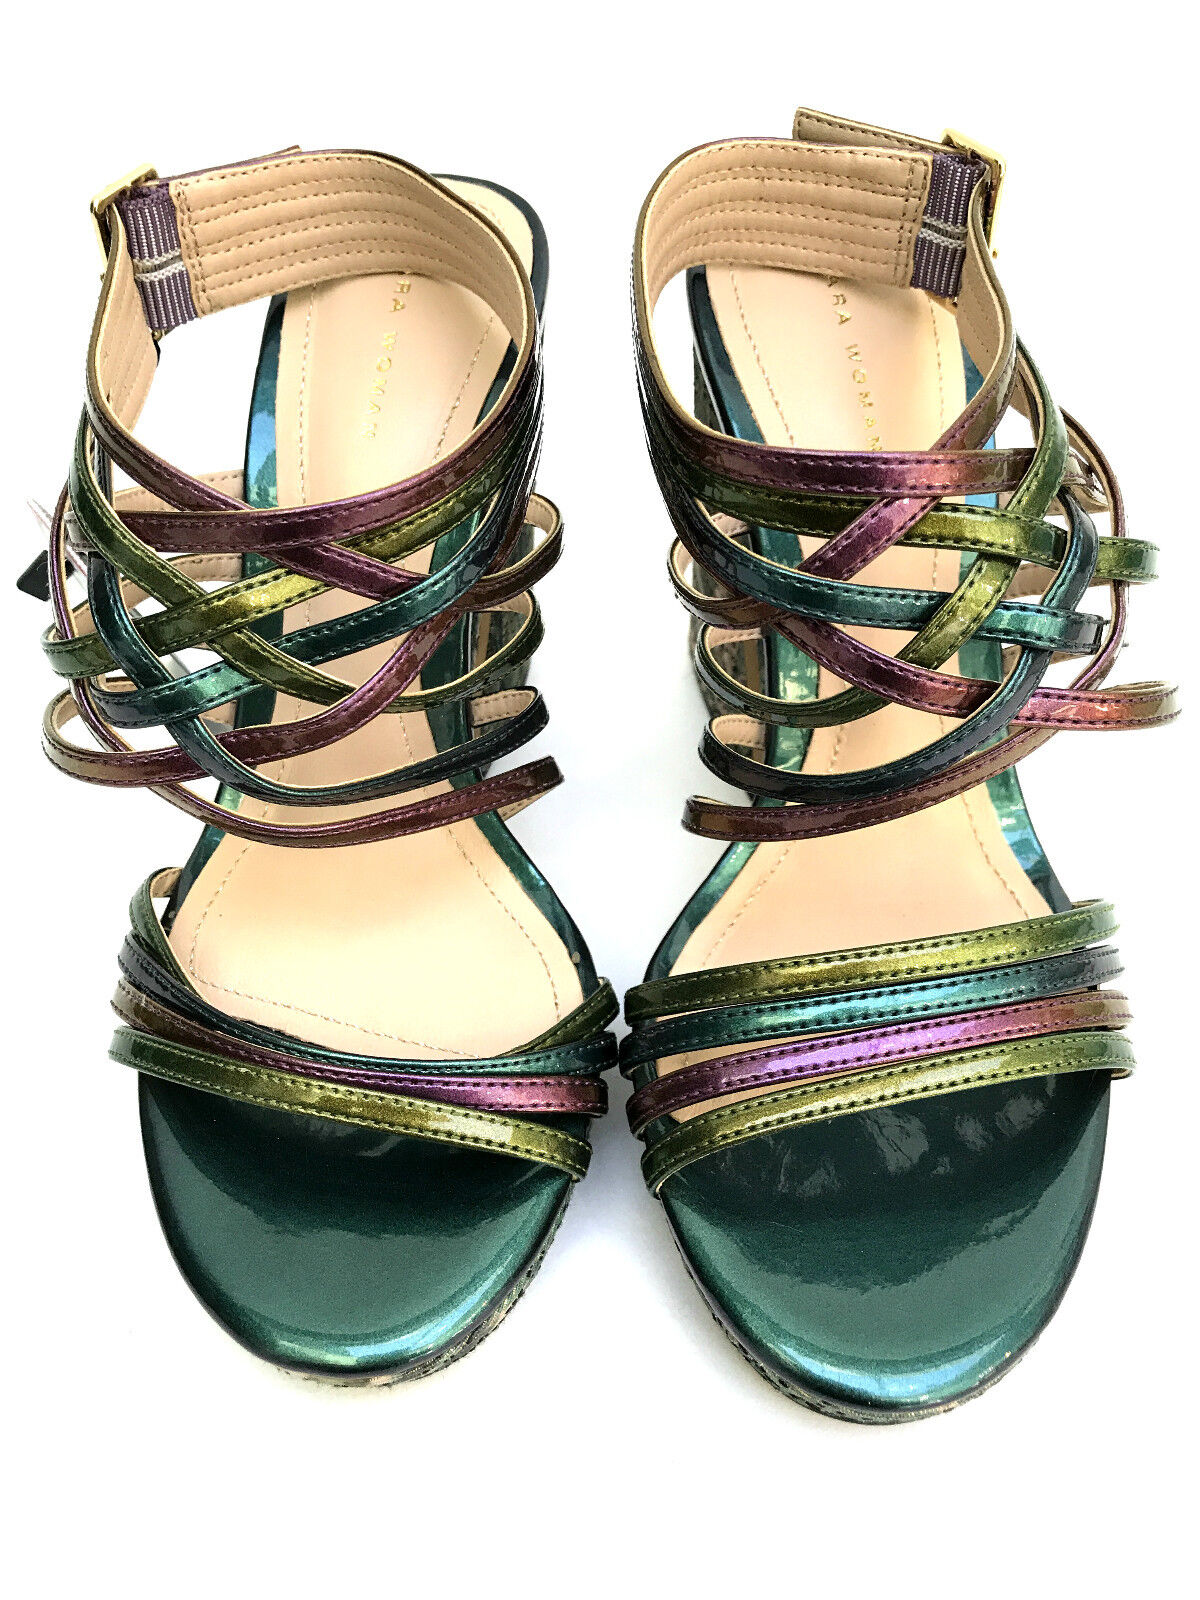 ZARA MULTICOLORED HIGH UK3 HEEL PLATFORM STRAPY SANDALS SIZE UK3 HIGH EUR36 US6 fbcbdb